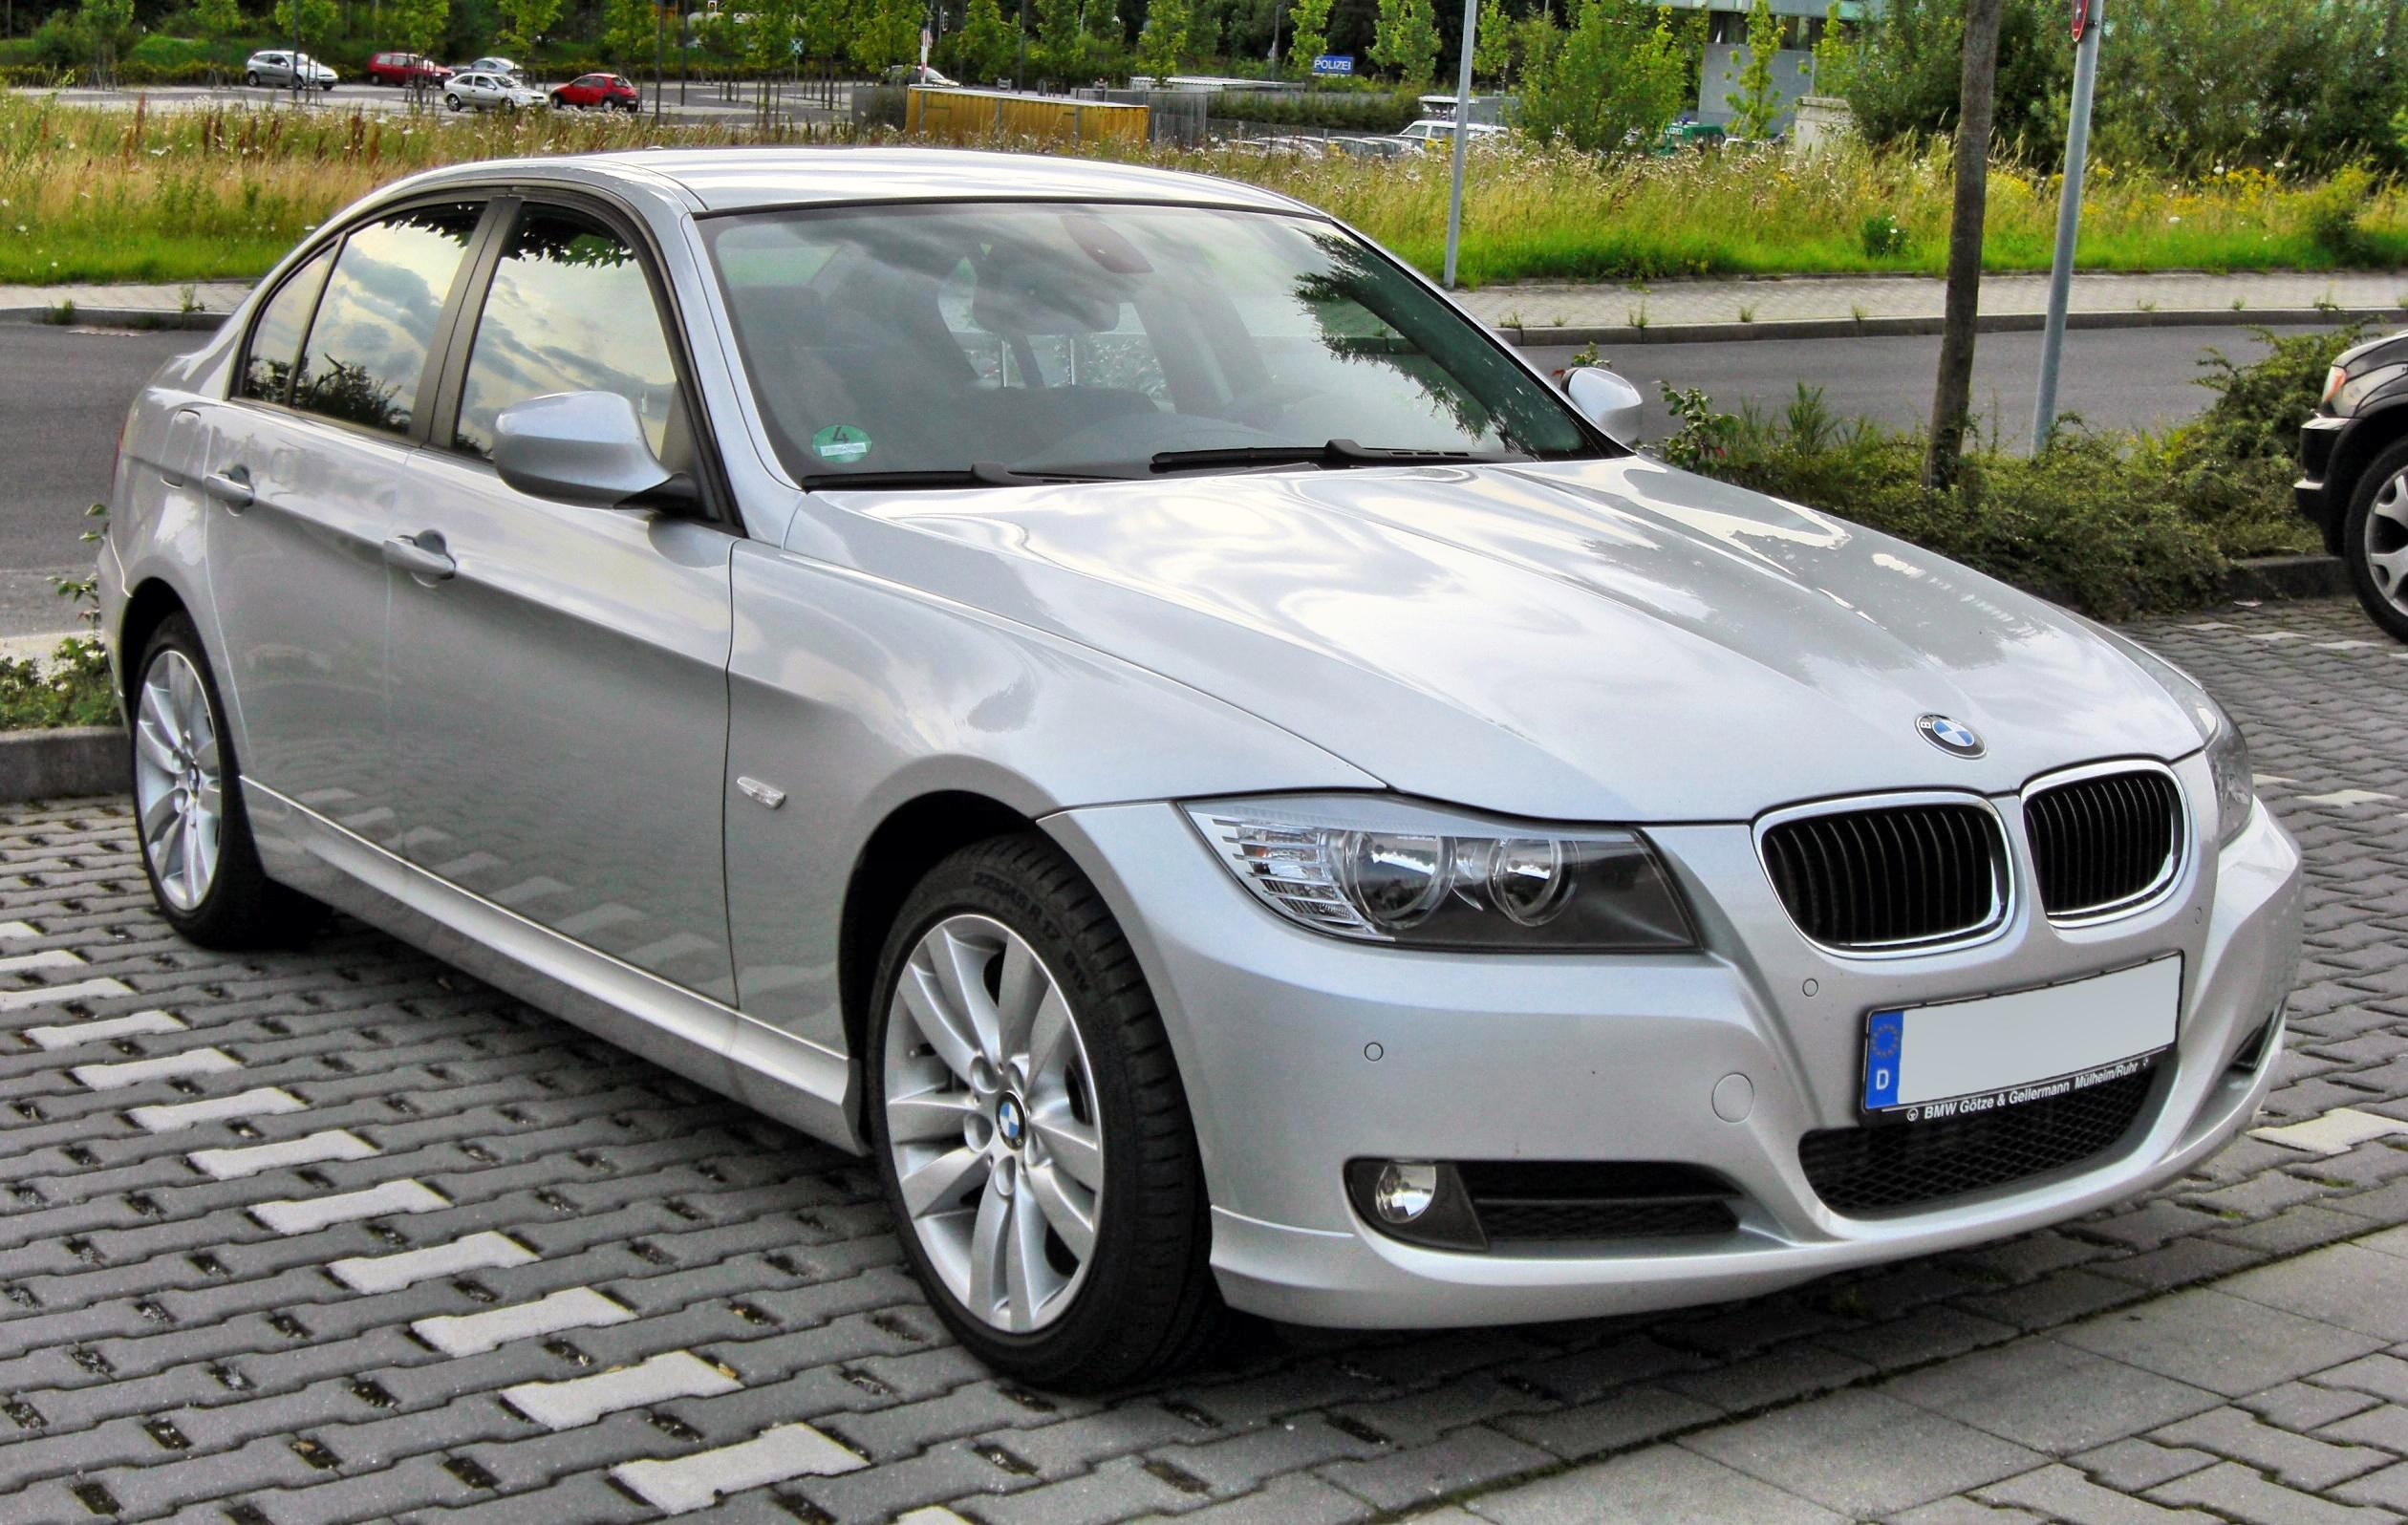 2008 bmw 3 series e90 pictures information and specs. Black Bedroom Furniture Sets. Home Design Ideas